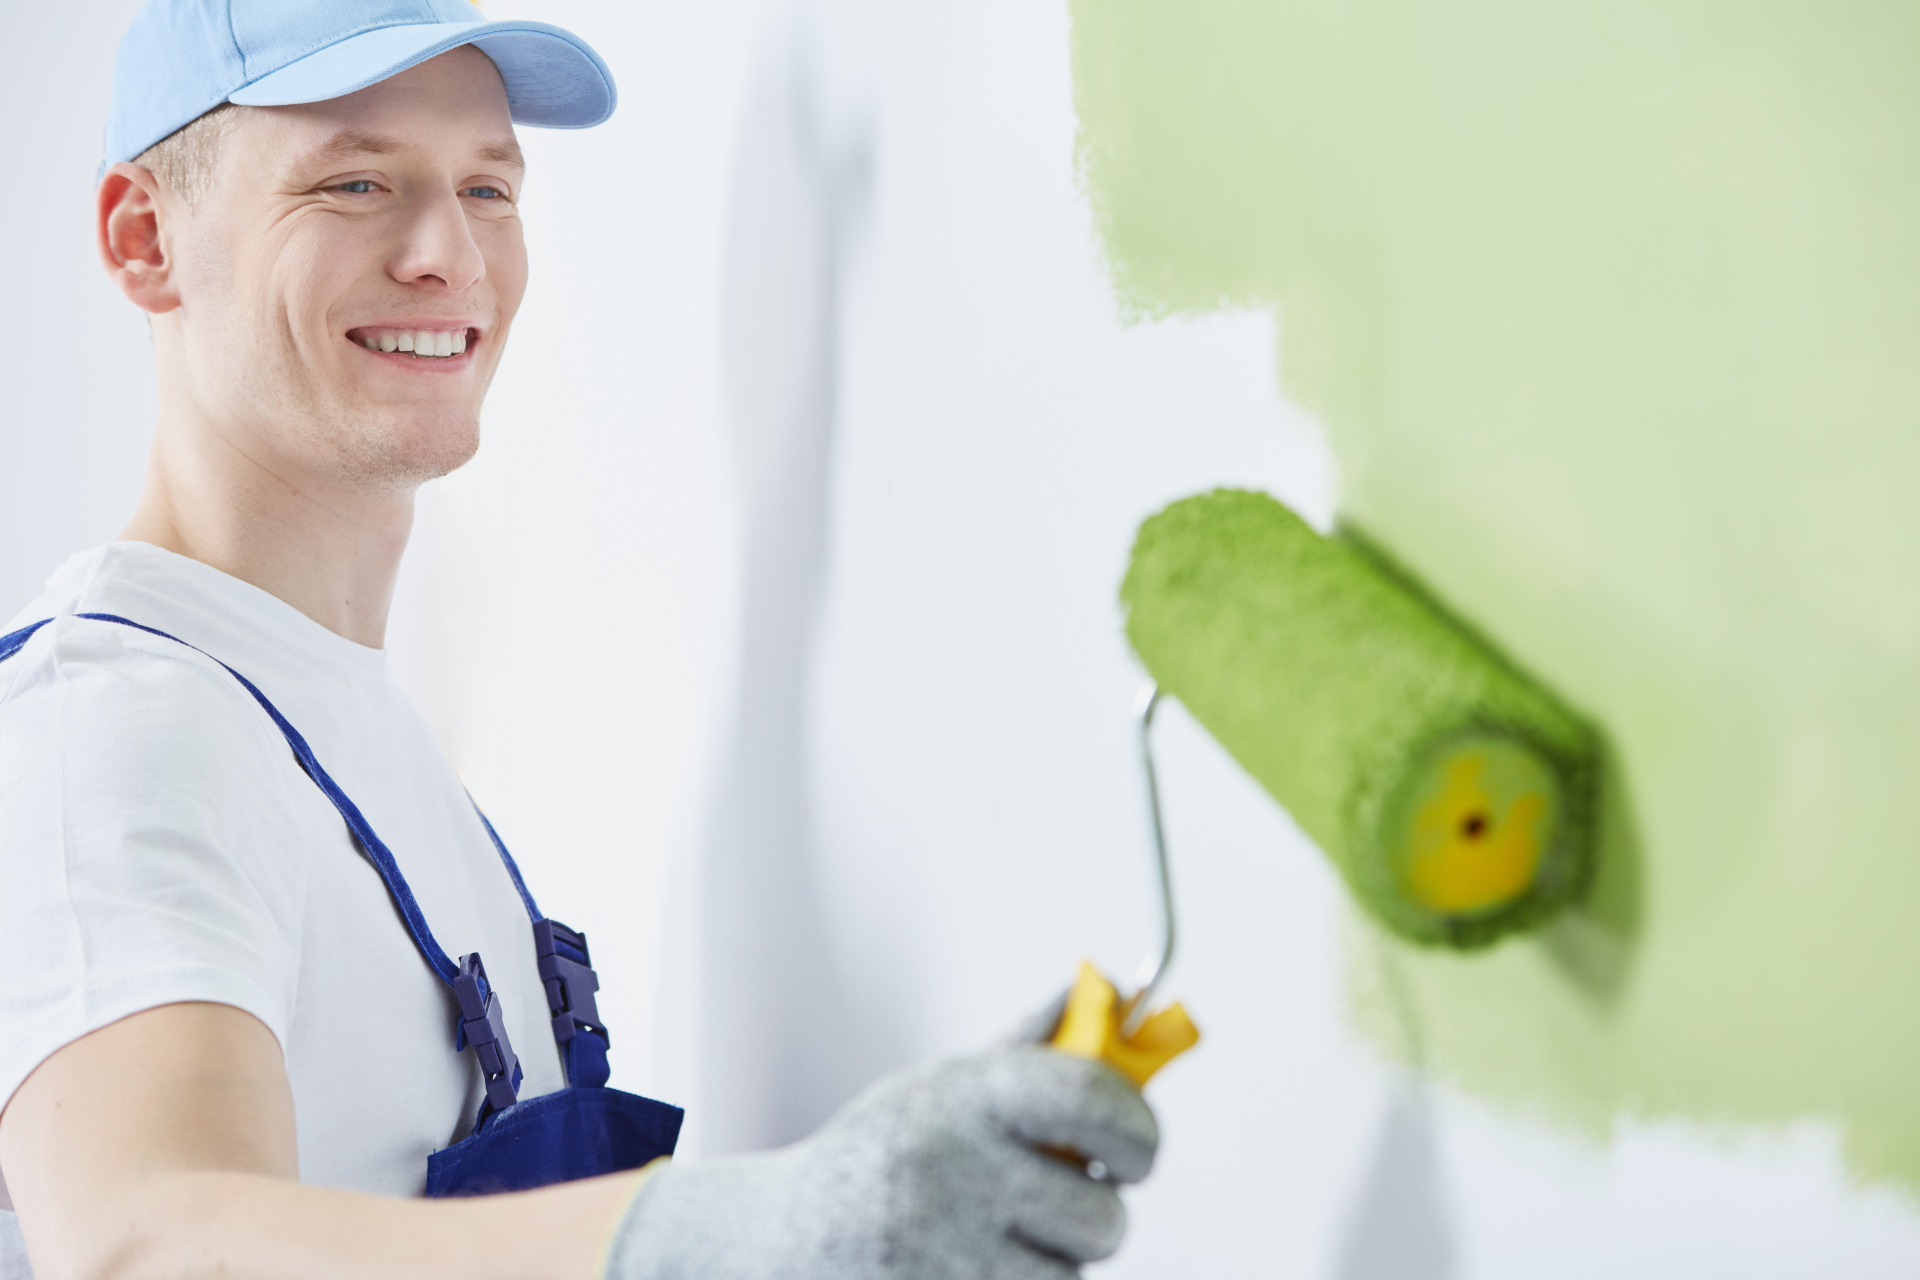 Painter painting with green paint roller